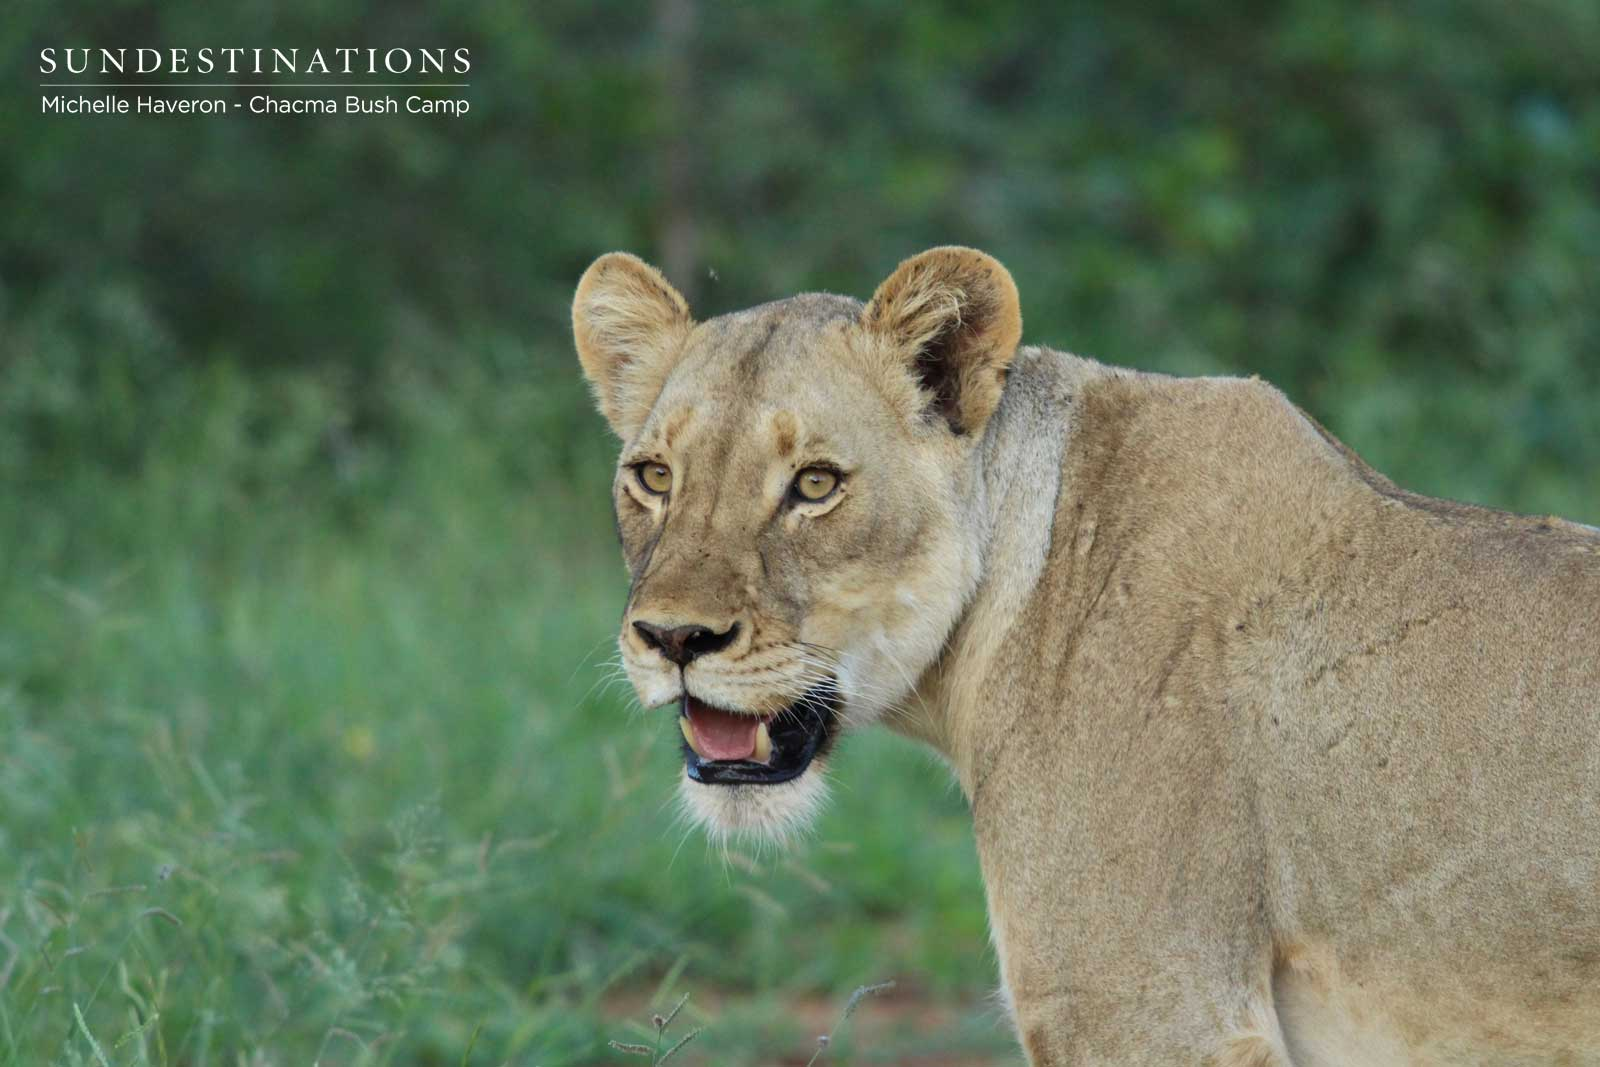 Lioness Chacma